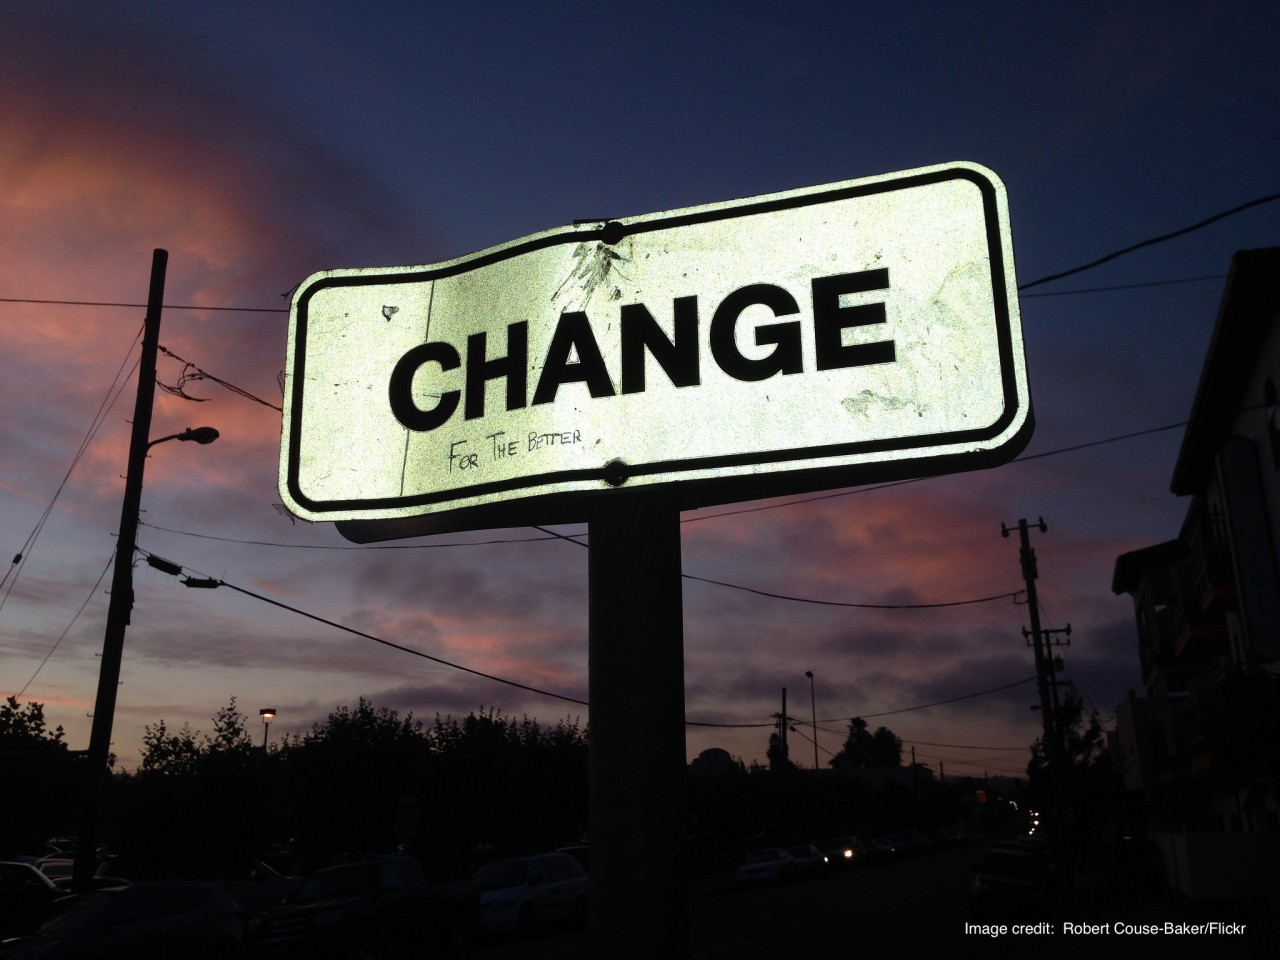 Can school leaders rely on Kotter's change management model?